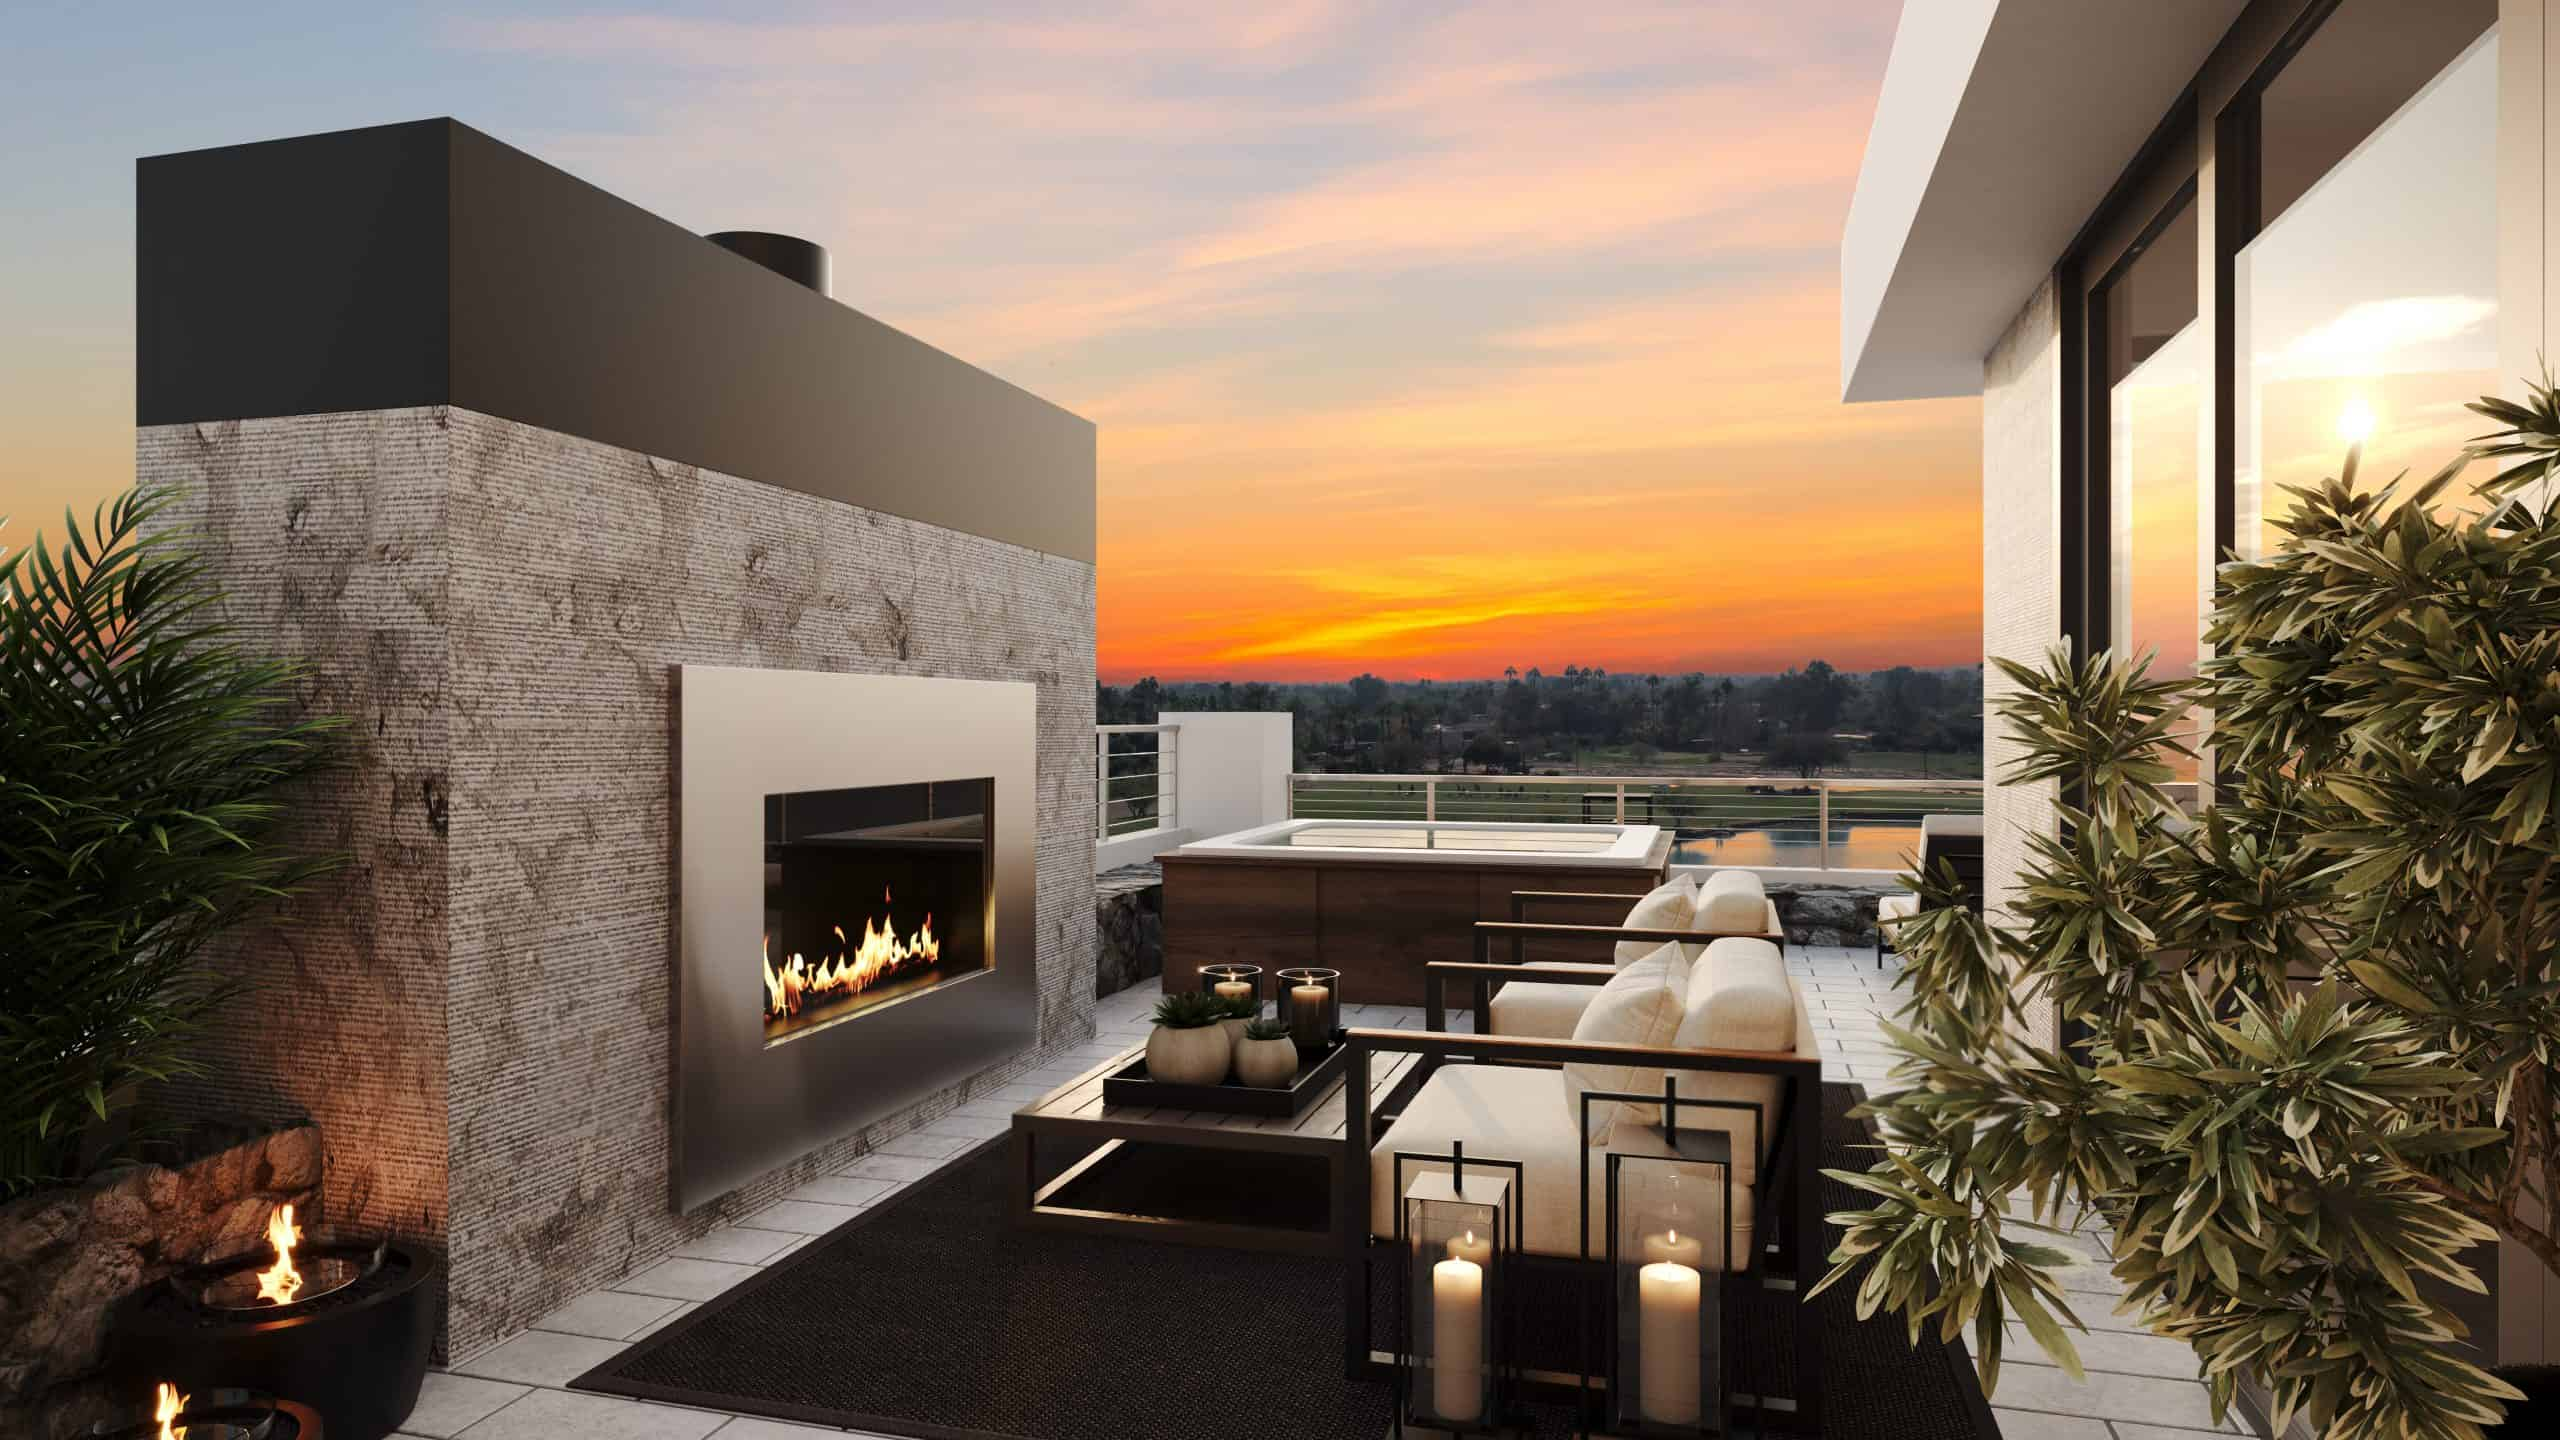 cullum-homes-in-scottsdale-podcast-interview-image-4